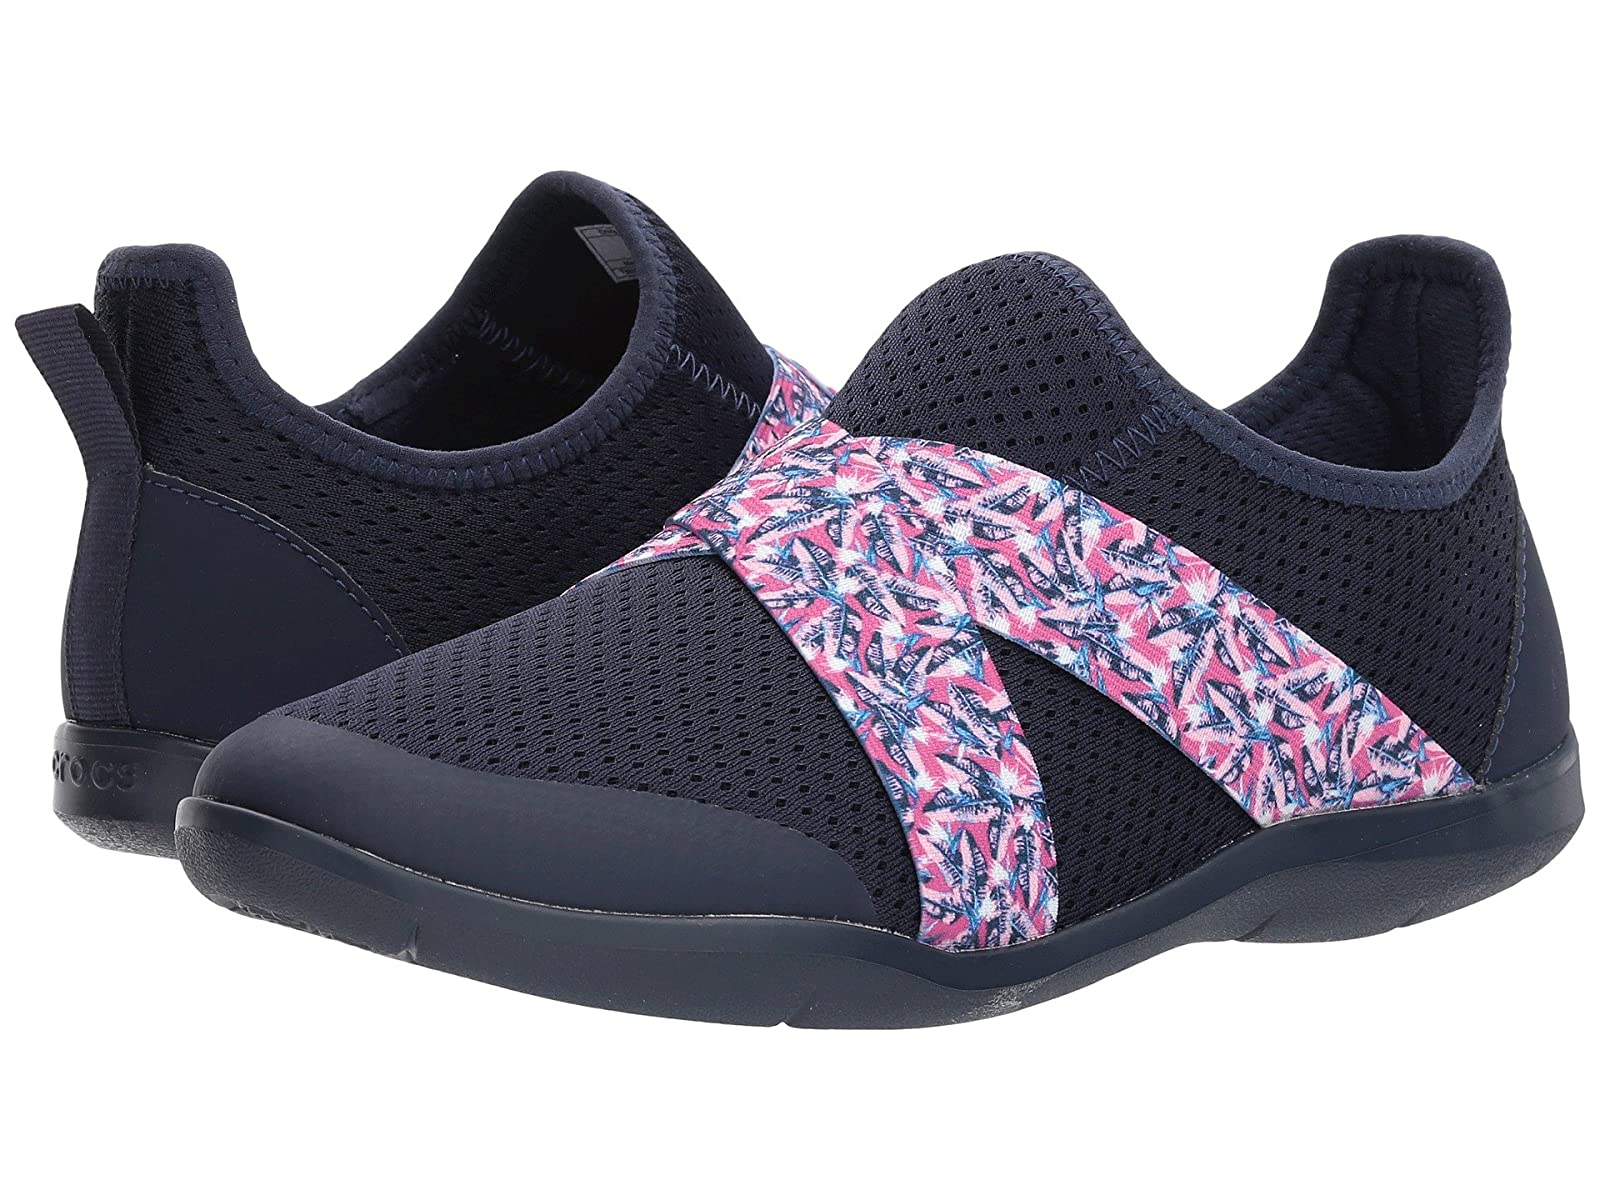 Crocs Swiftwater Cross-StrapCheap and distinctive eye-catching shoes